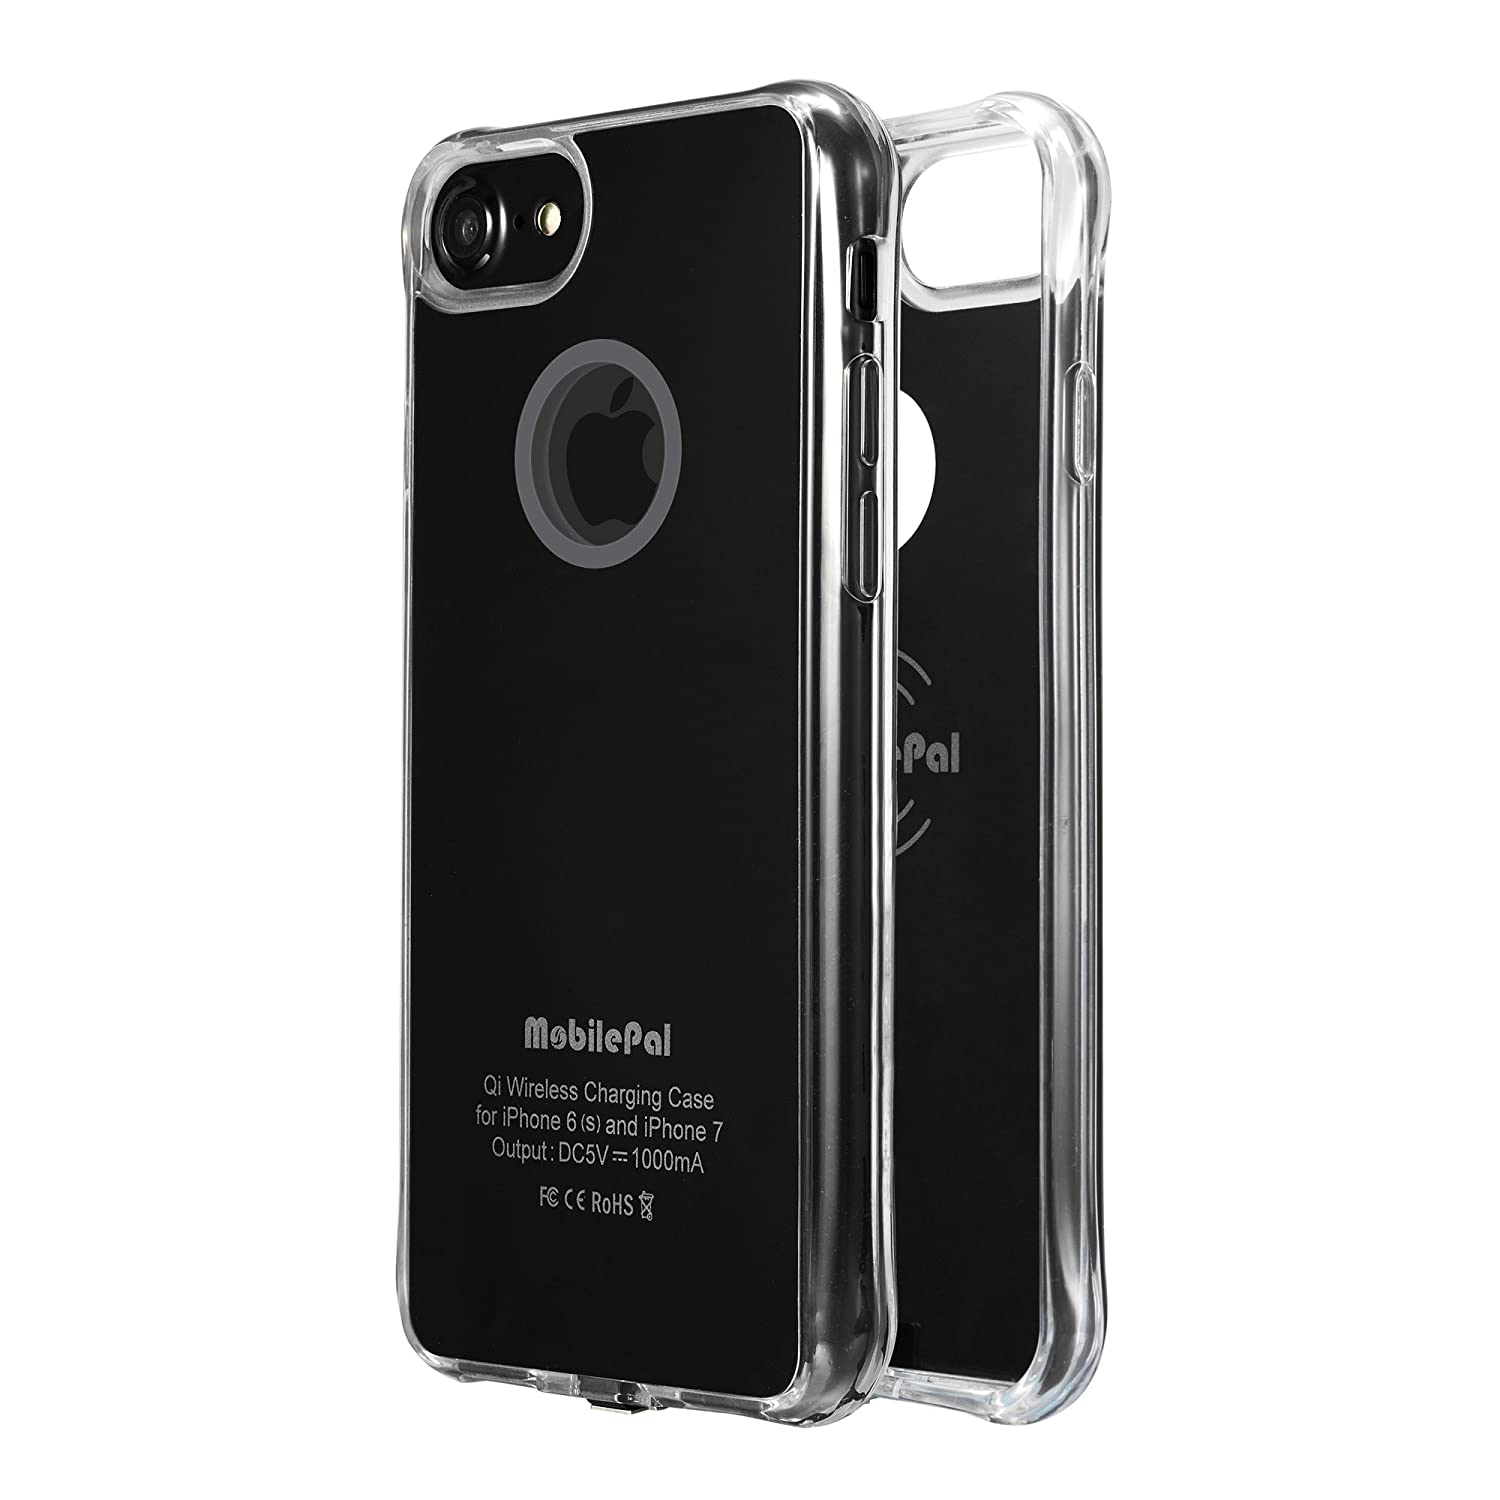 Amazon.com  MobilePal Qi Wireless Charging Case for iPhone 7 and iPhone 6(s)   New 2017 Model  (Black)  Cell Phones   Accessories 47717baa8ea85